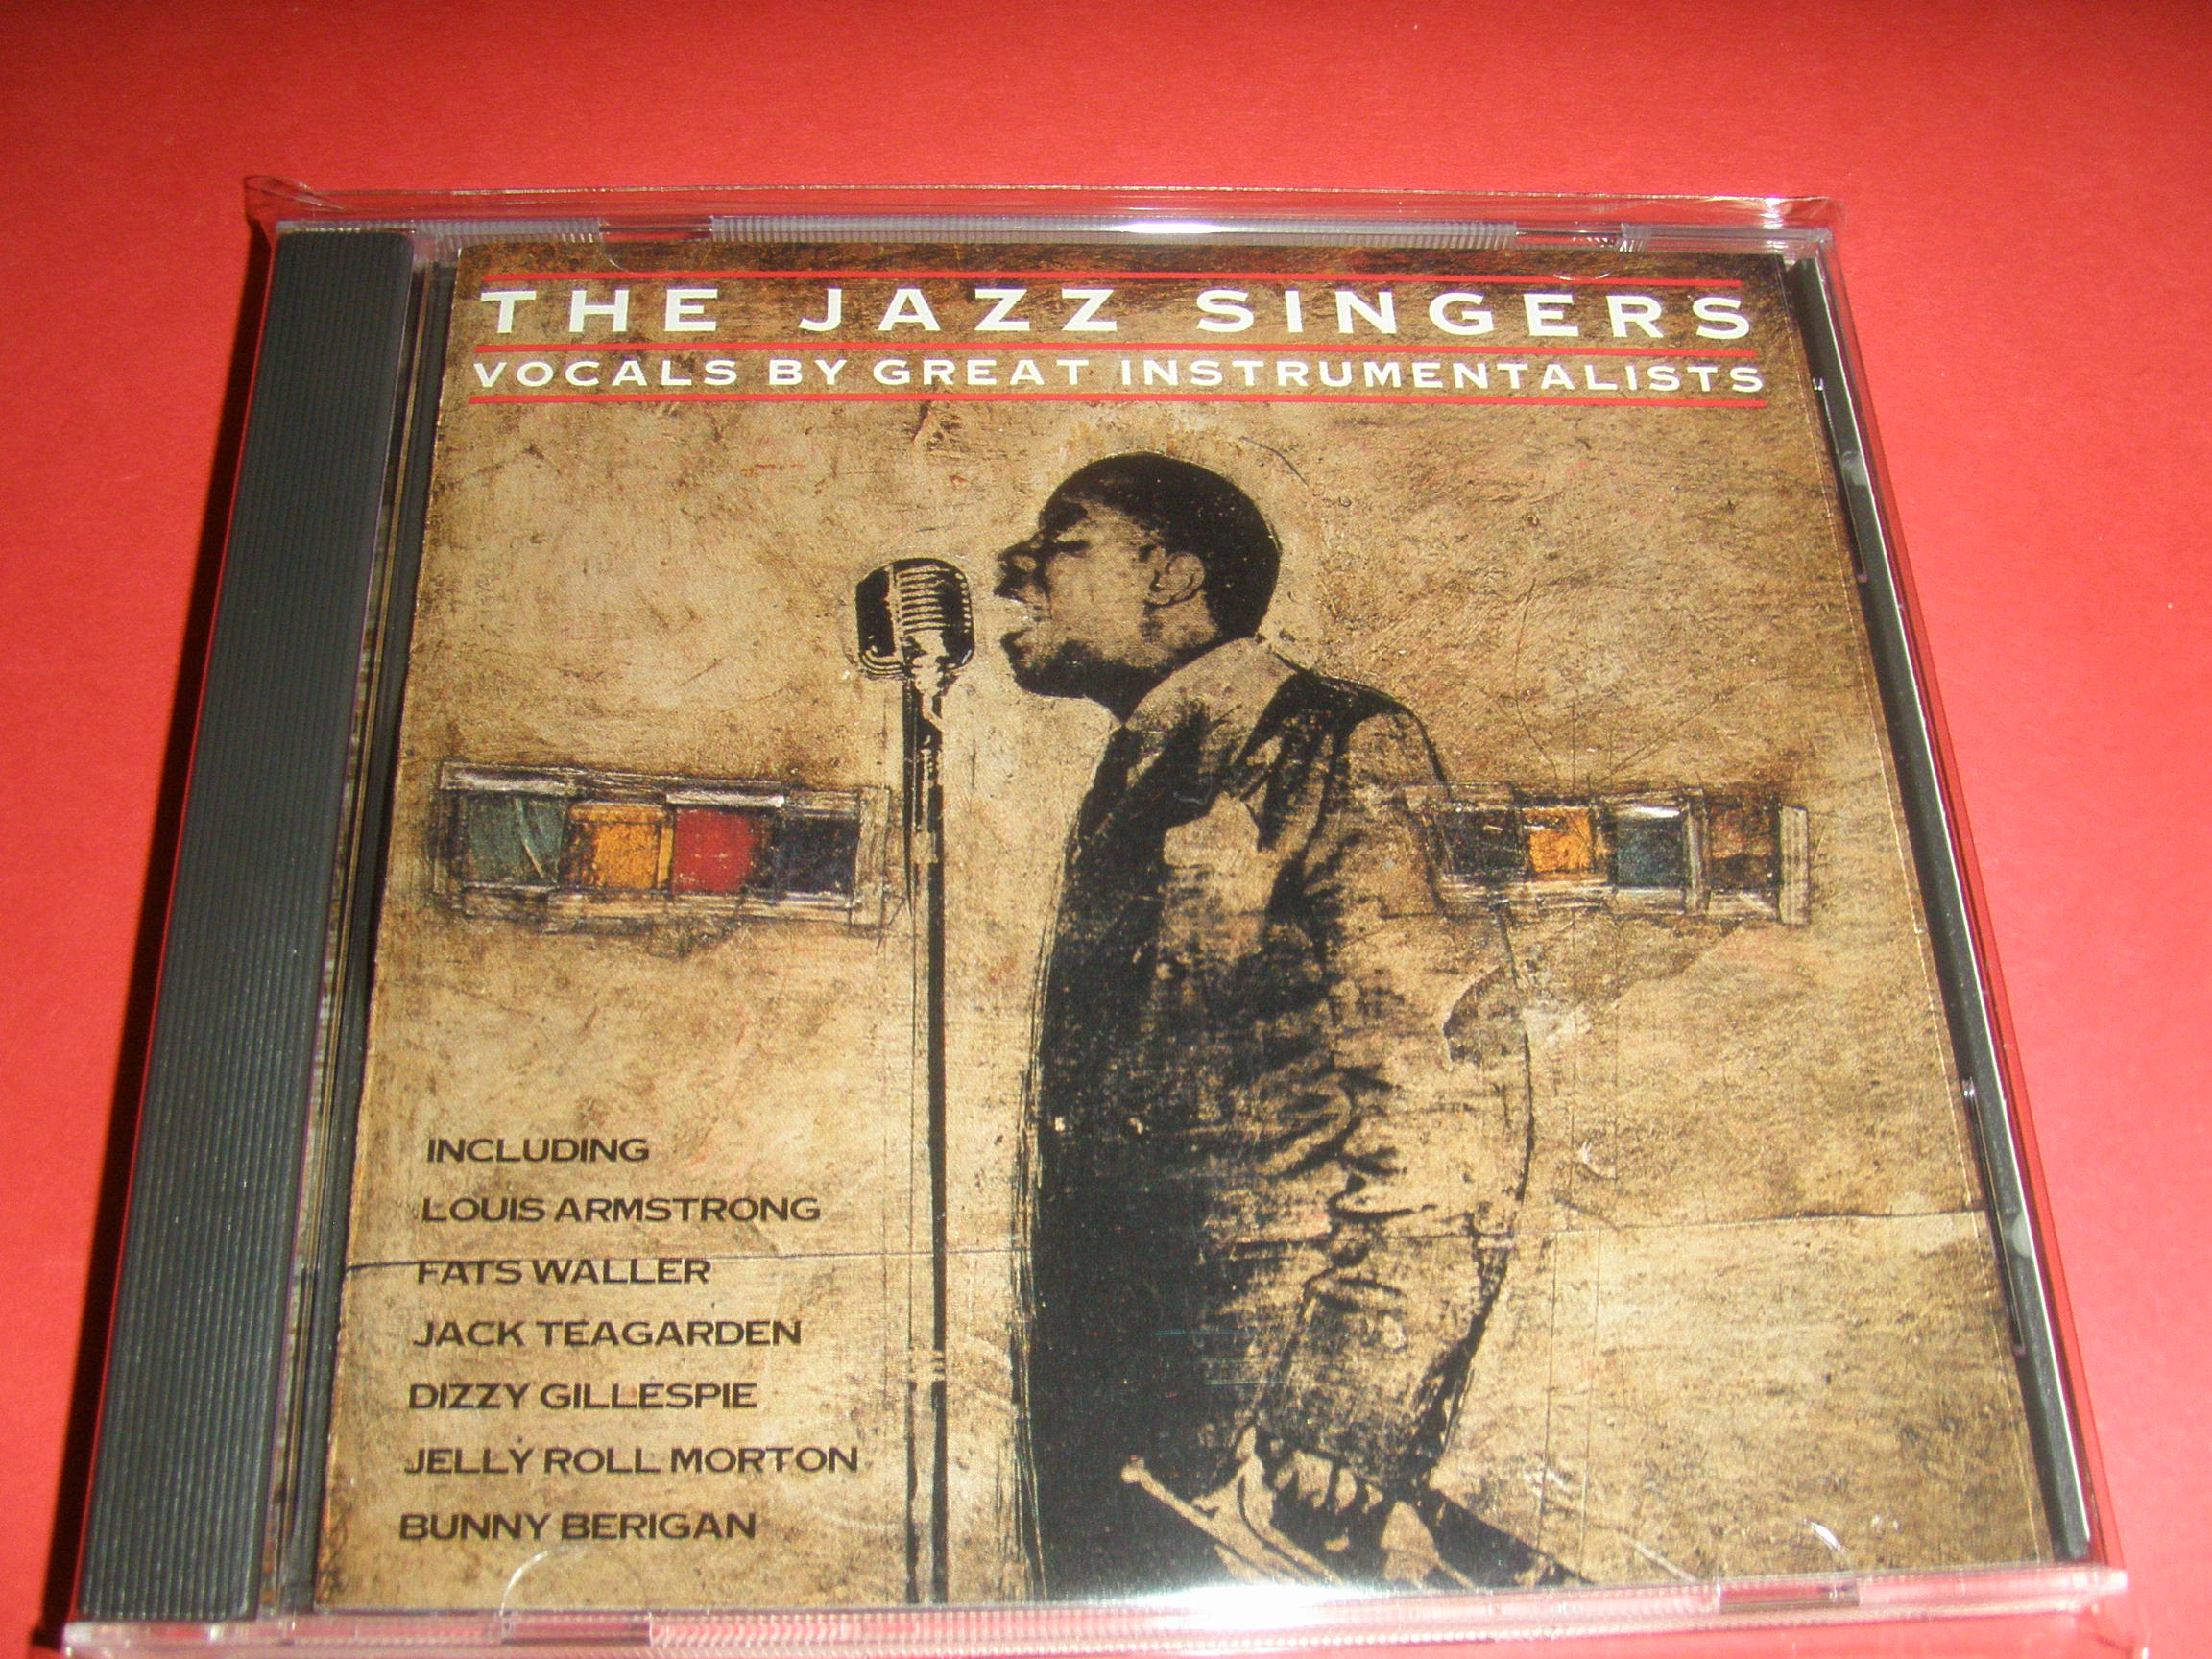 The Jazz Singers: Vocals By Great Instrumentalists